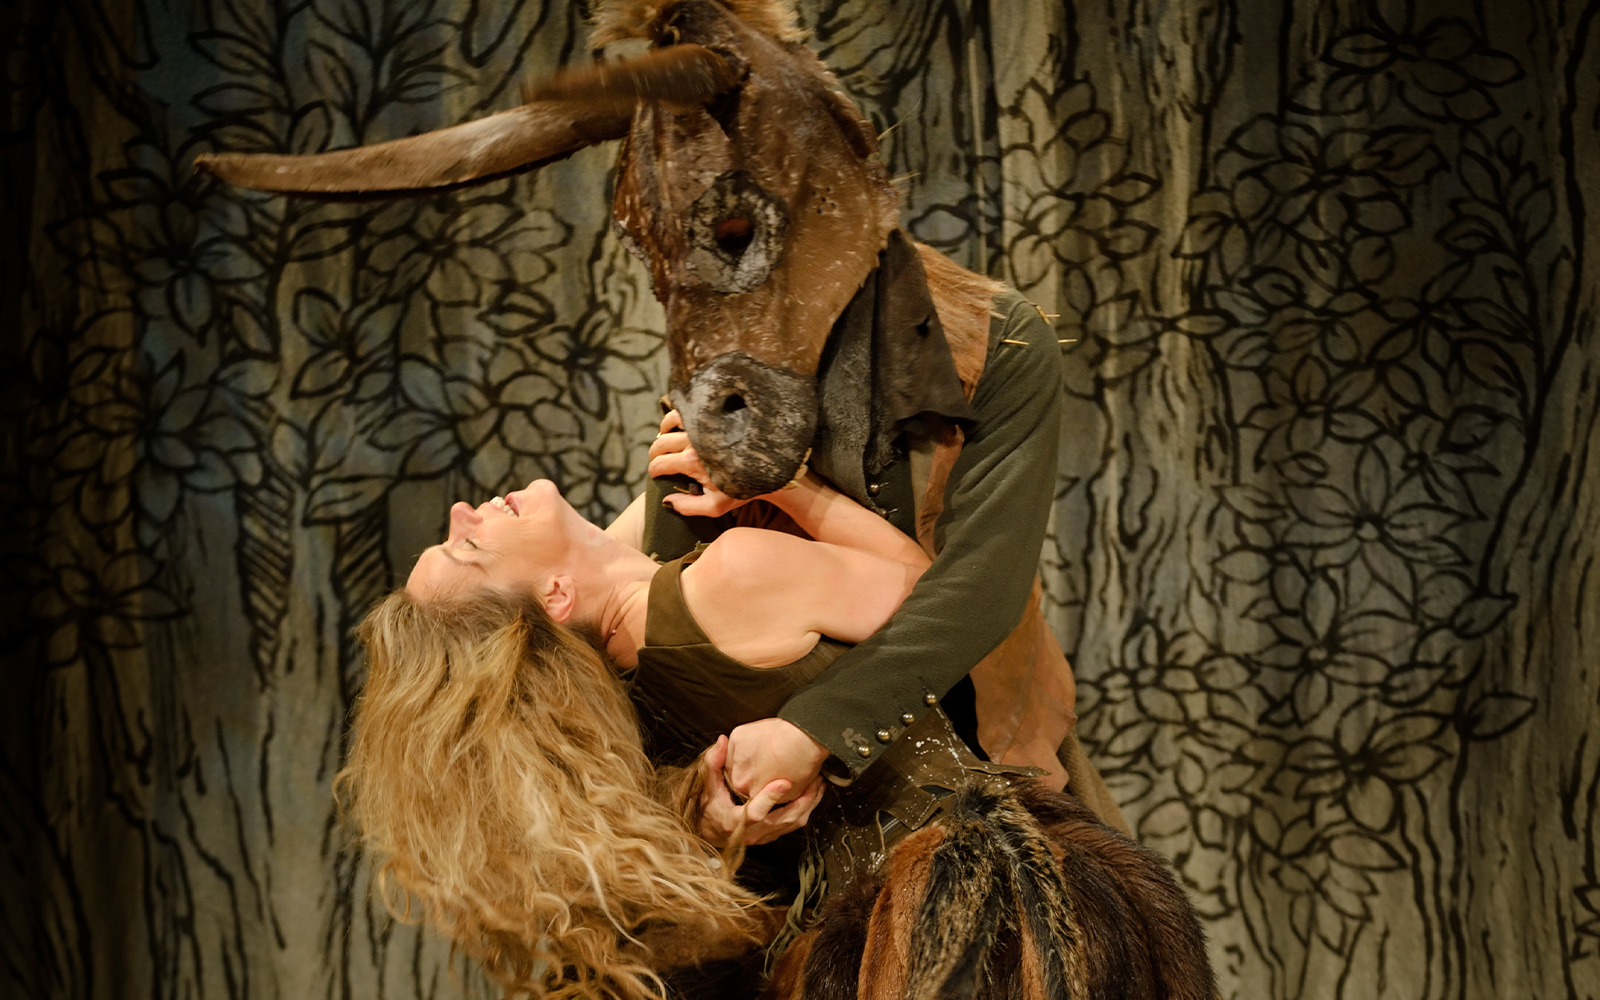 A person being dipped down by another person wearing a head of a donkey